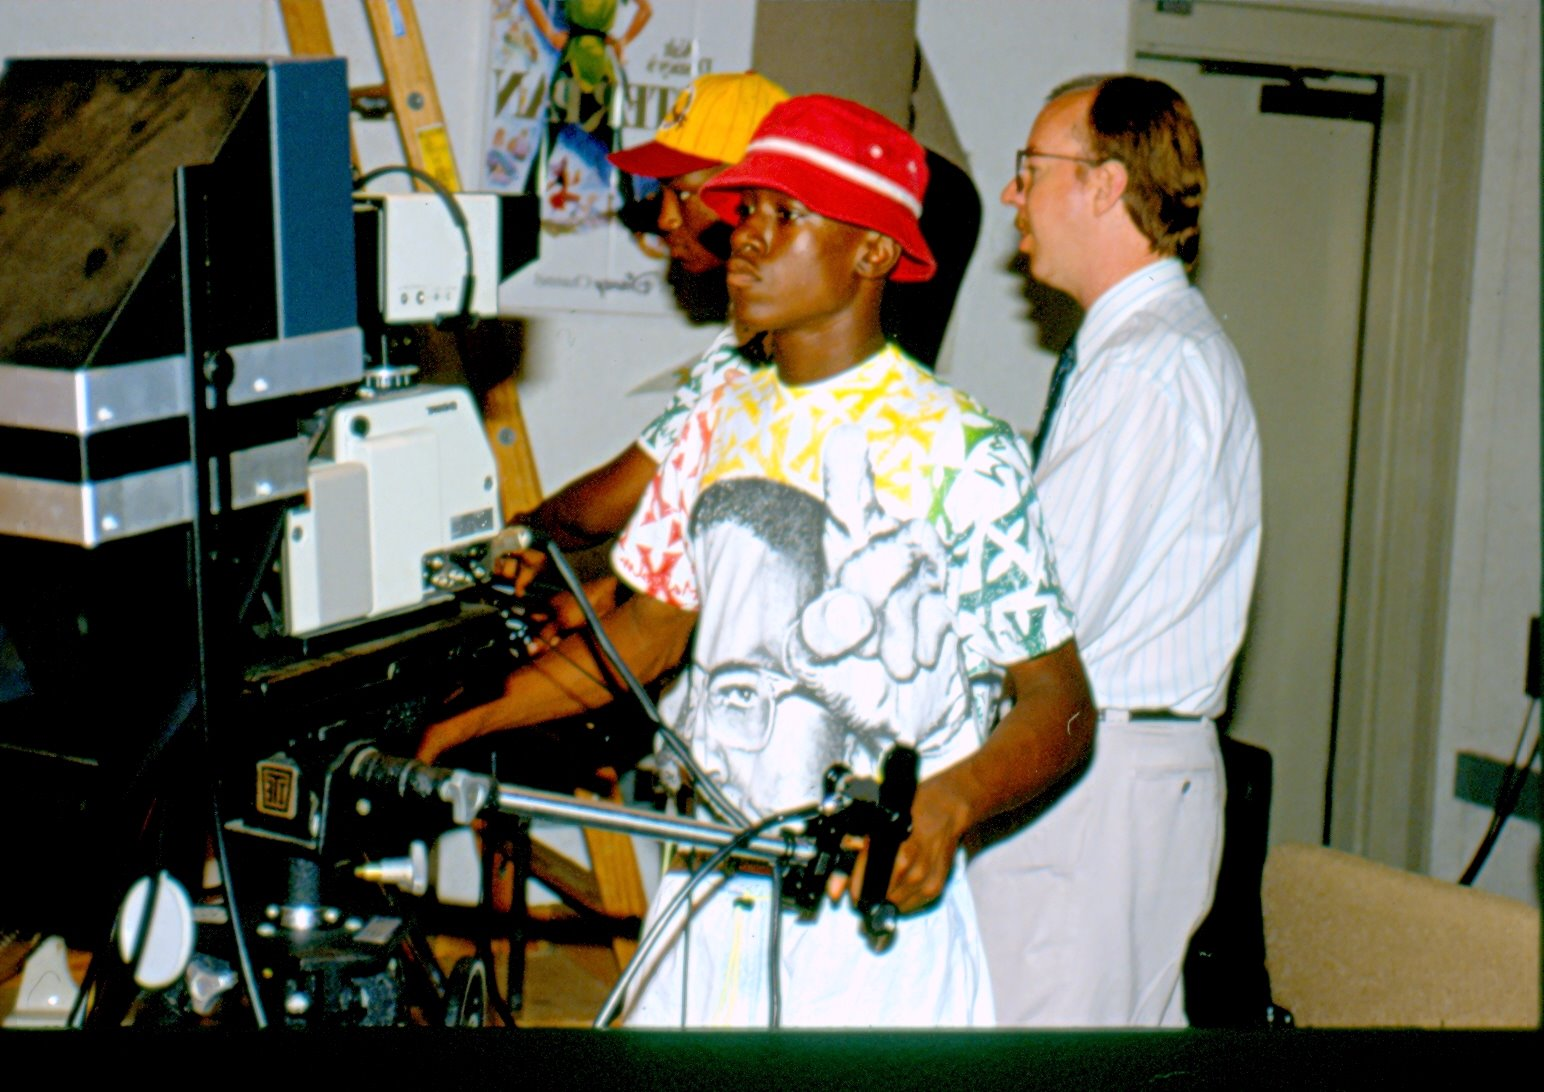 Damon_Chip McCraw at RELAY Production 1993 - Copy